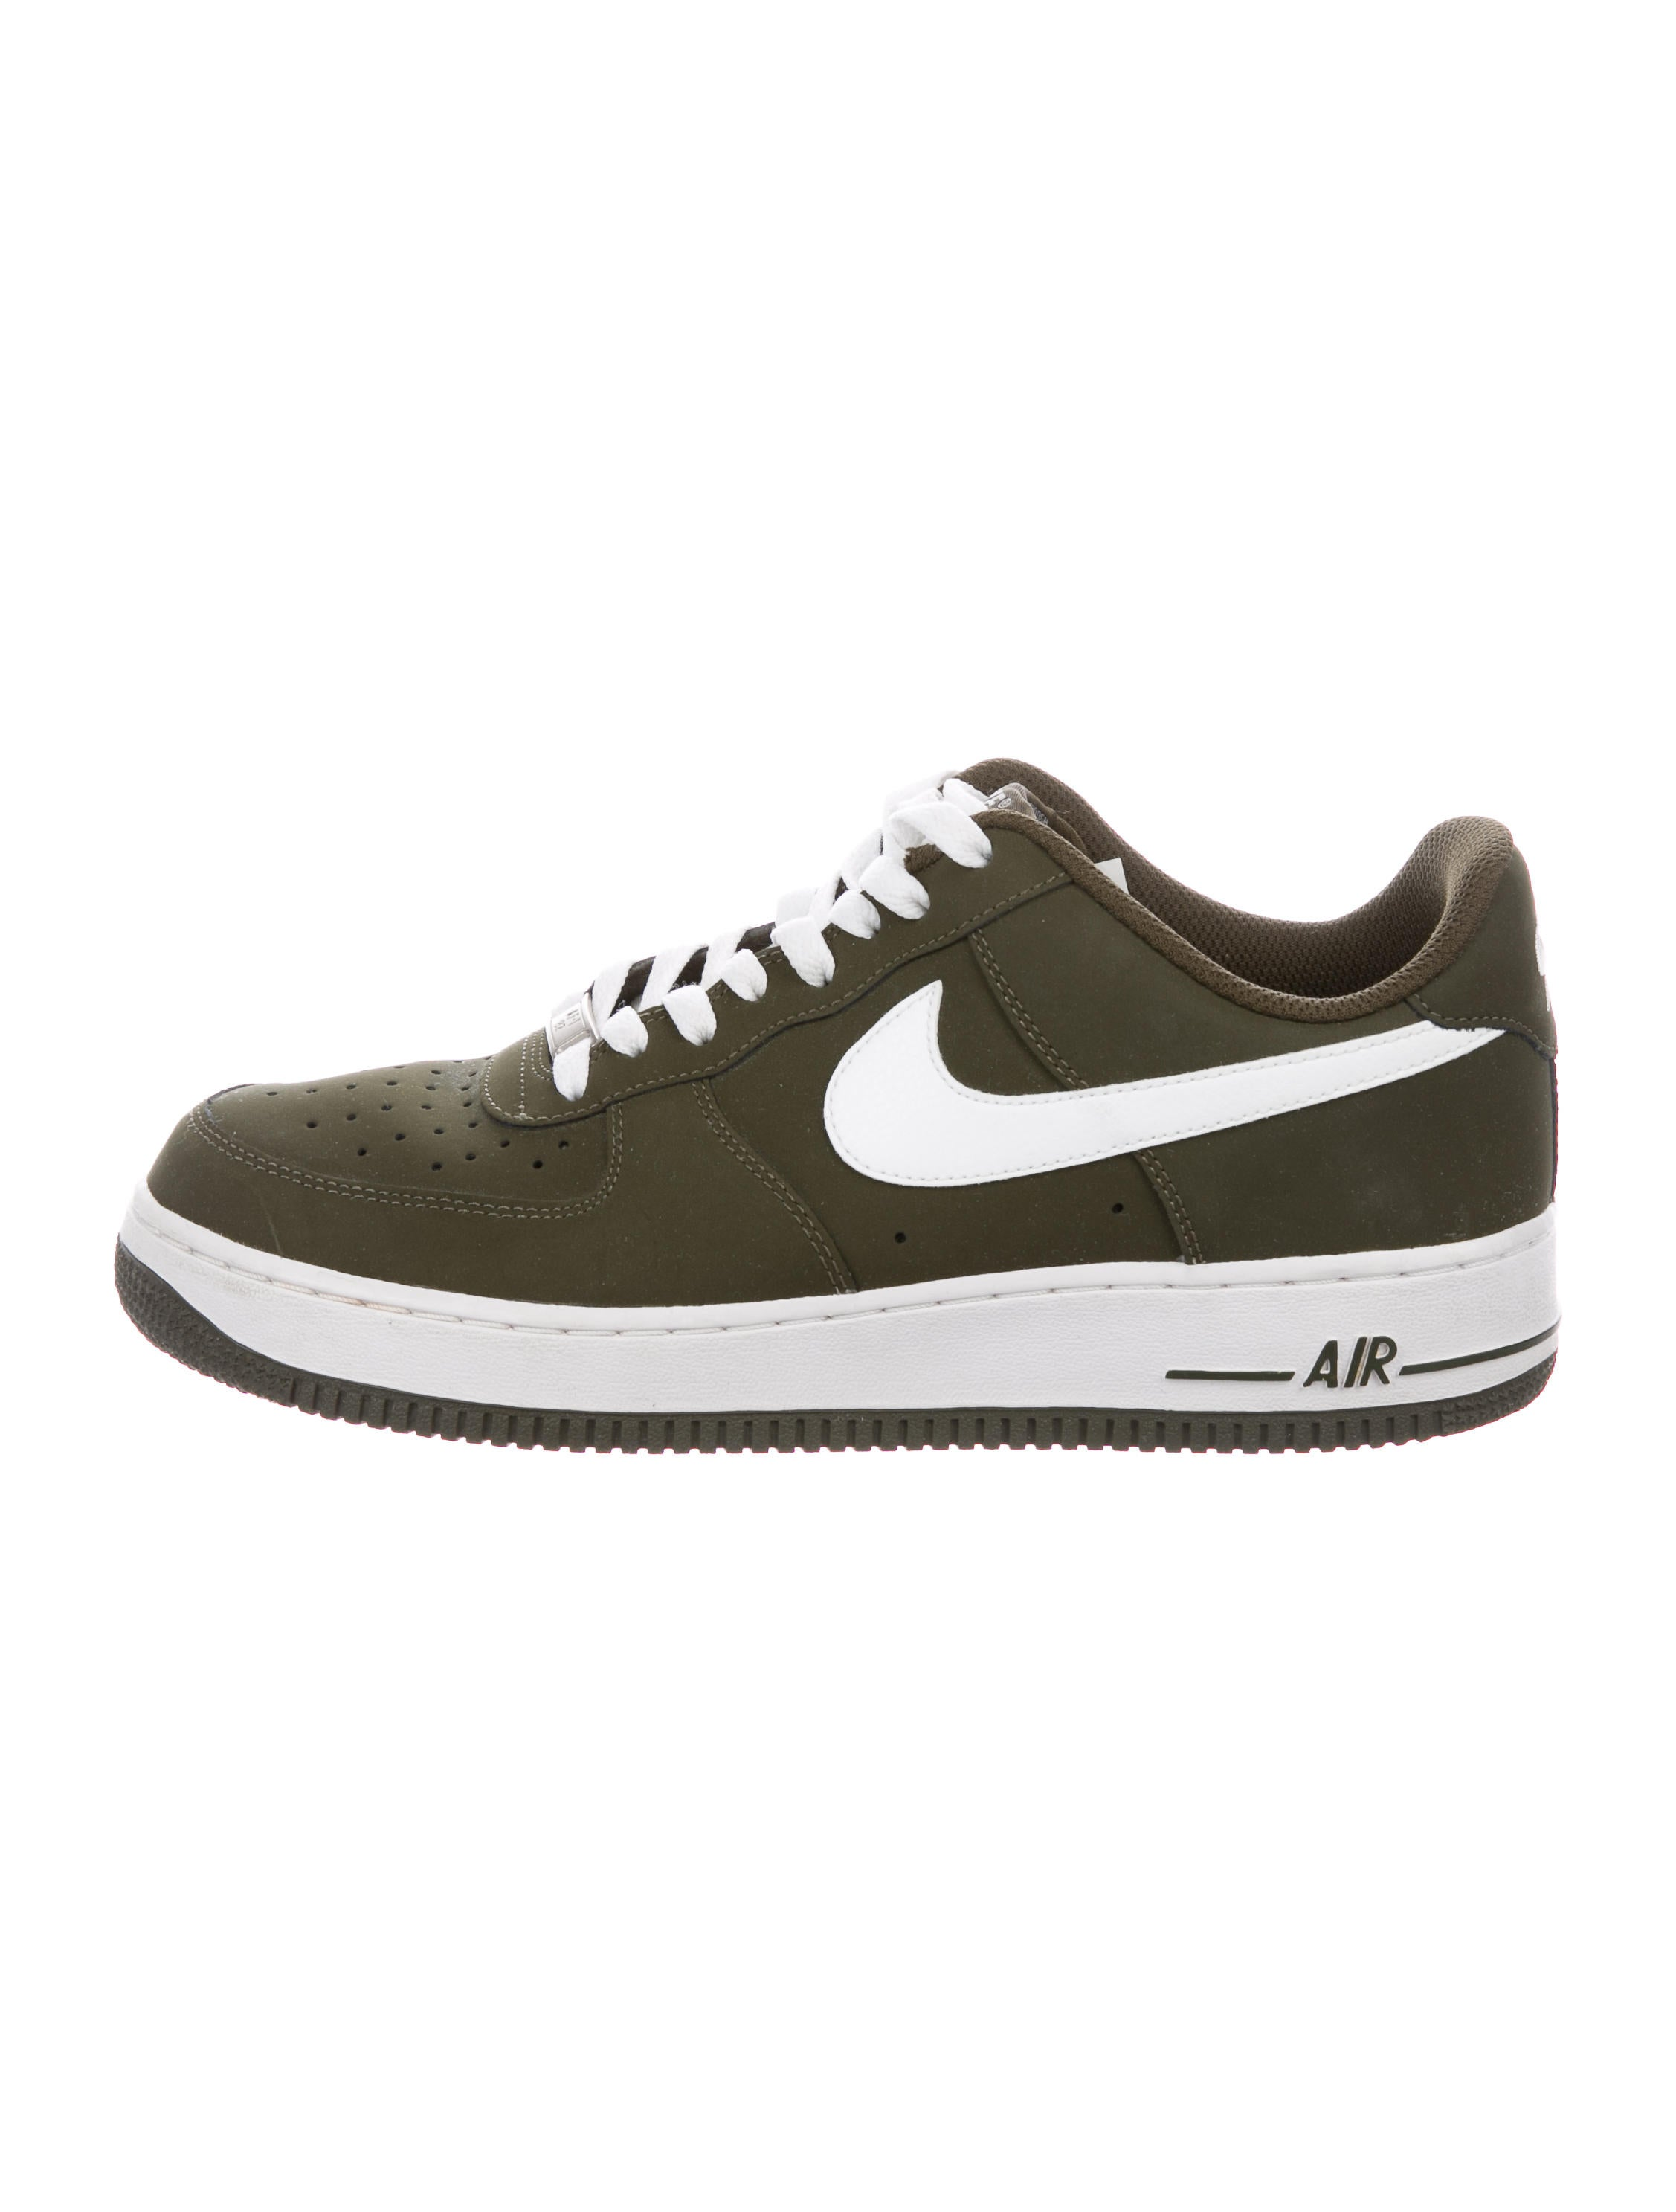 """Other Designers ANTI SOCIAL SOCIAL CLUB NIKE AIR FORCE 1 LOW """"White"""" Air Force 1 Low """"White"""" World Limited to 24 10.5 sneakers"""